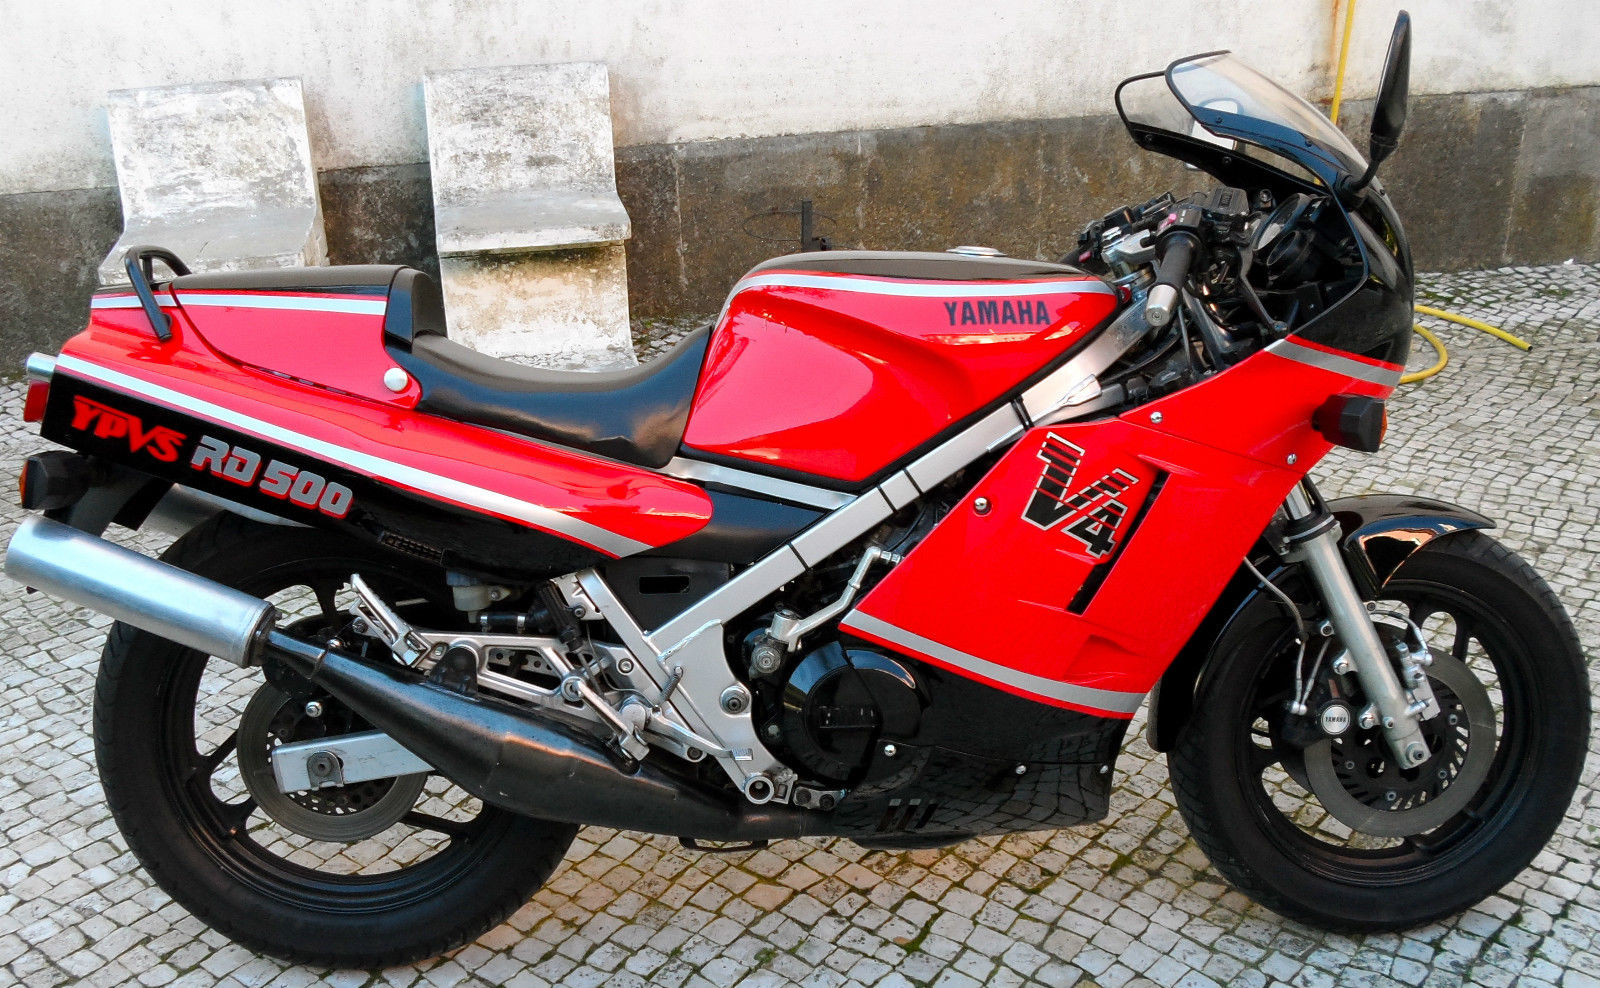 Yamaha RD 500 LC: pics, specs and list of seriess by year